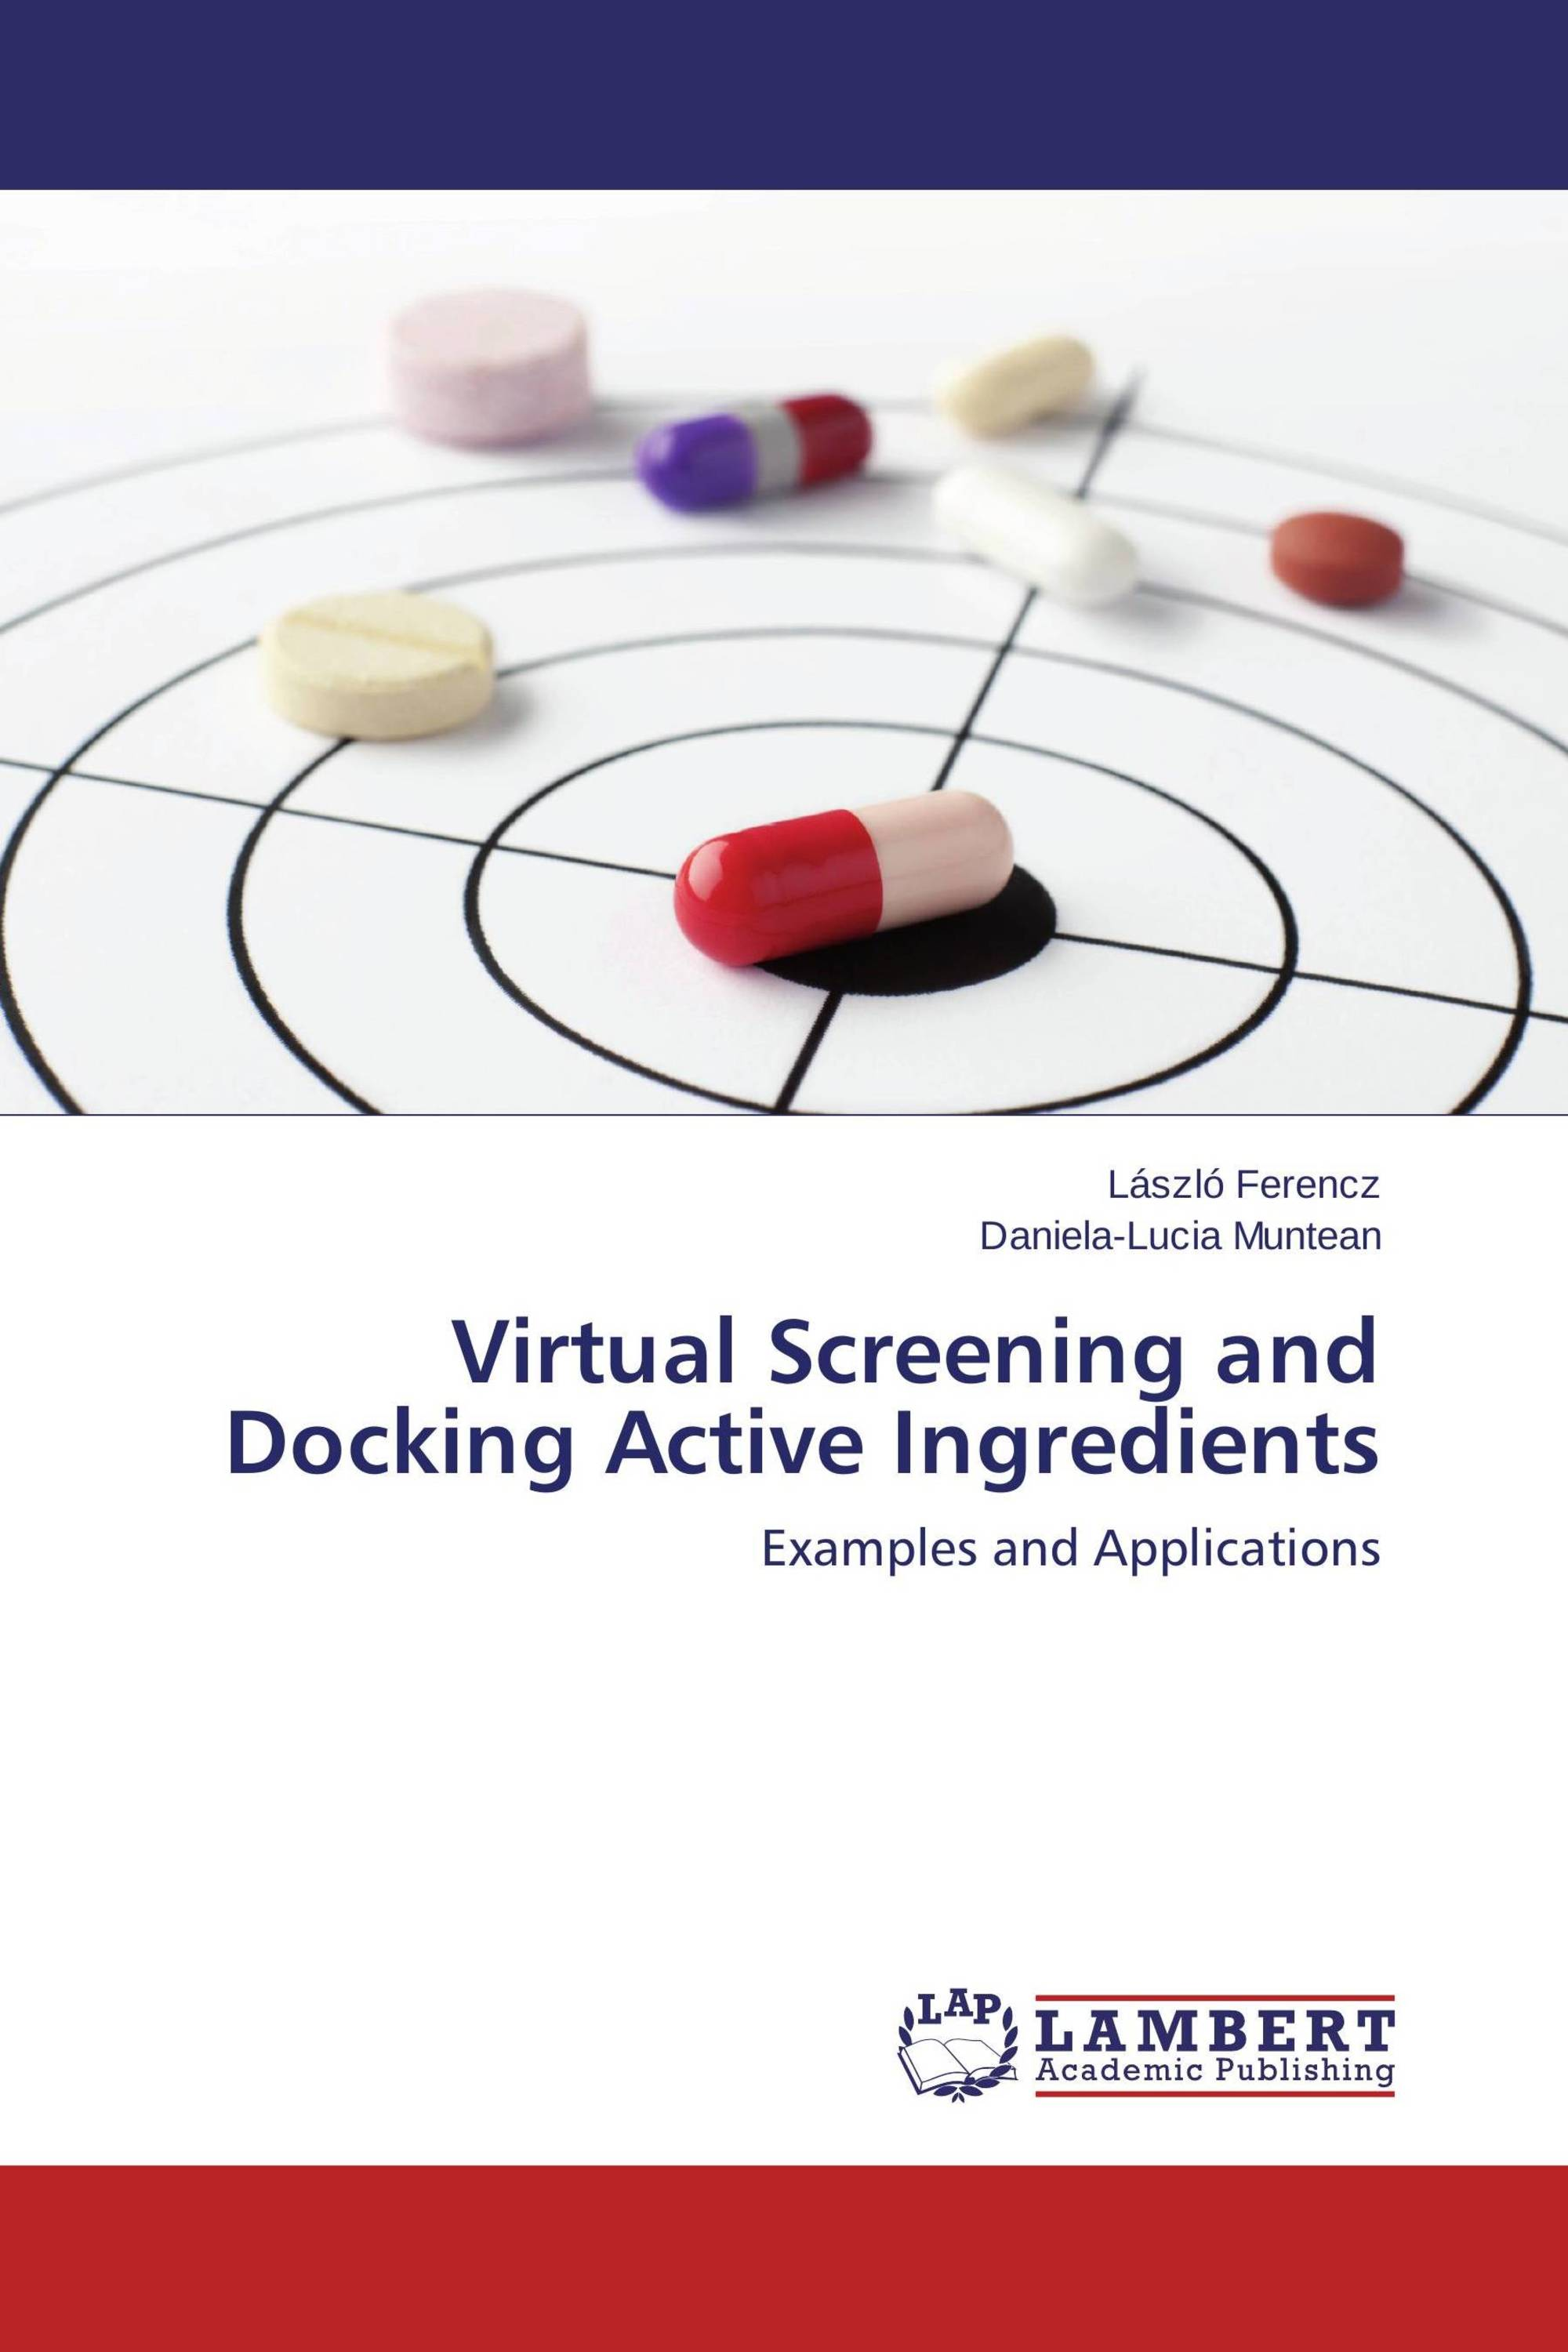 Virtual Screening and Docking Active Ingredients